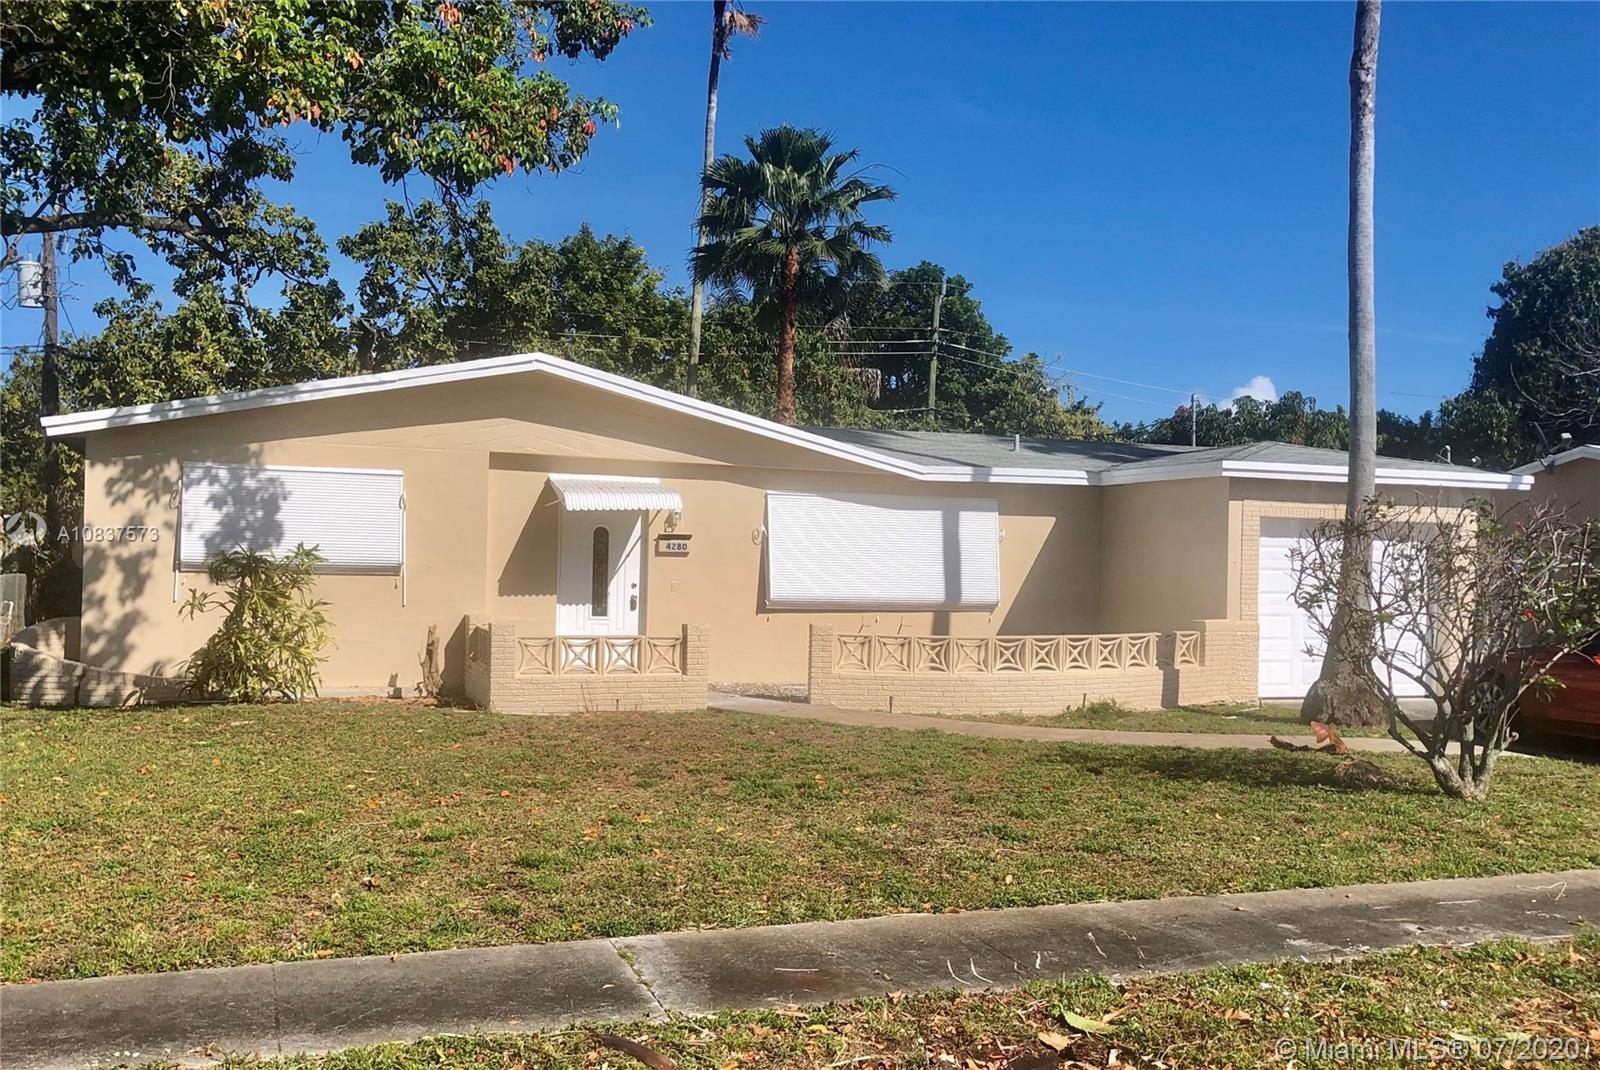 REAL LARGE 3/2 HOME WITH 1600 LIVING SQ FT AREA, NEW AC UNIT, NEW SOFT CLOSED KITCHEN CABINETS AND DRAWS, WITH QUARTZ COUNTER TOP, REMODELED MASTER BATHROOM, NEW ELECTRIC PANEL, NEW SS APPLIANCES. FRESHLY PAINTED INSIDE AND OUTSIDE. STOVE, REFRIGERATOR, WASHER AND DRYER TO BE INSTALL BEFORE CLOSING. LARGE CBS AND BLOCK FLORIDA ROOM THAT CAN POSSIBLY CONVERT IN EXTRA ROOM....